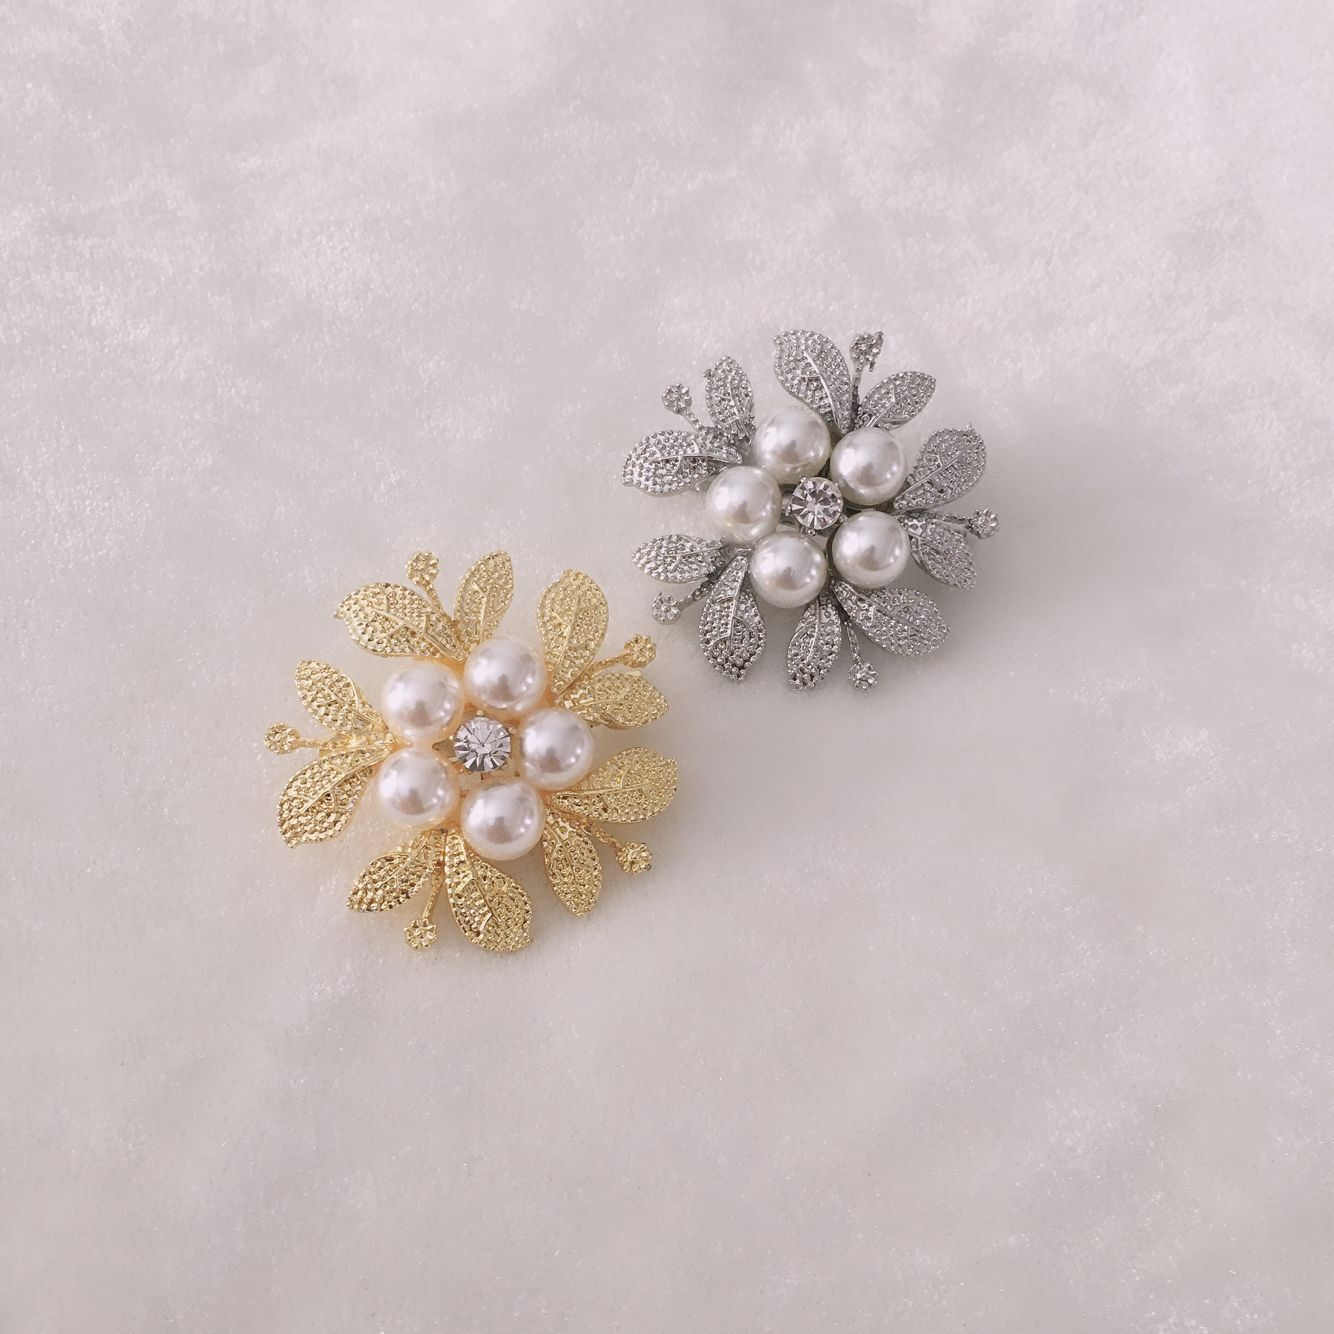 Korean temperament celebrity Pearl Brooch womens simple and elegant clothing accessories brooch pin clasp flower shawl clasp